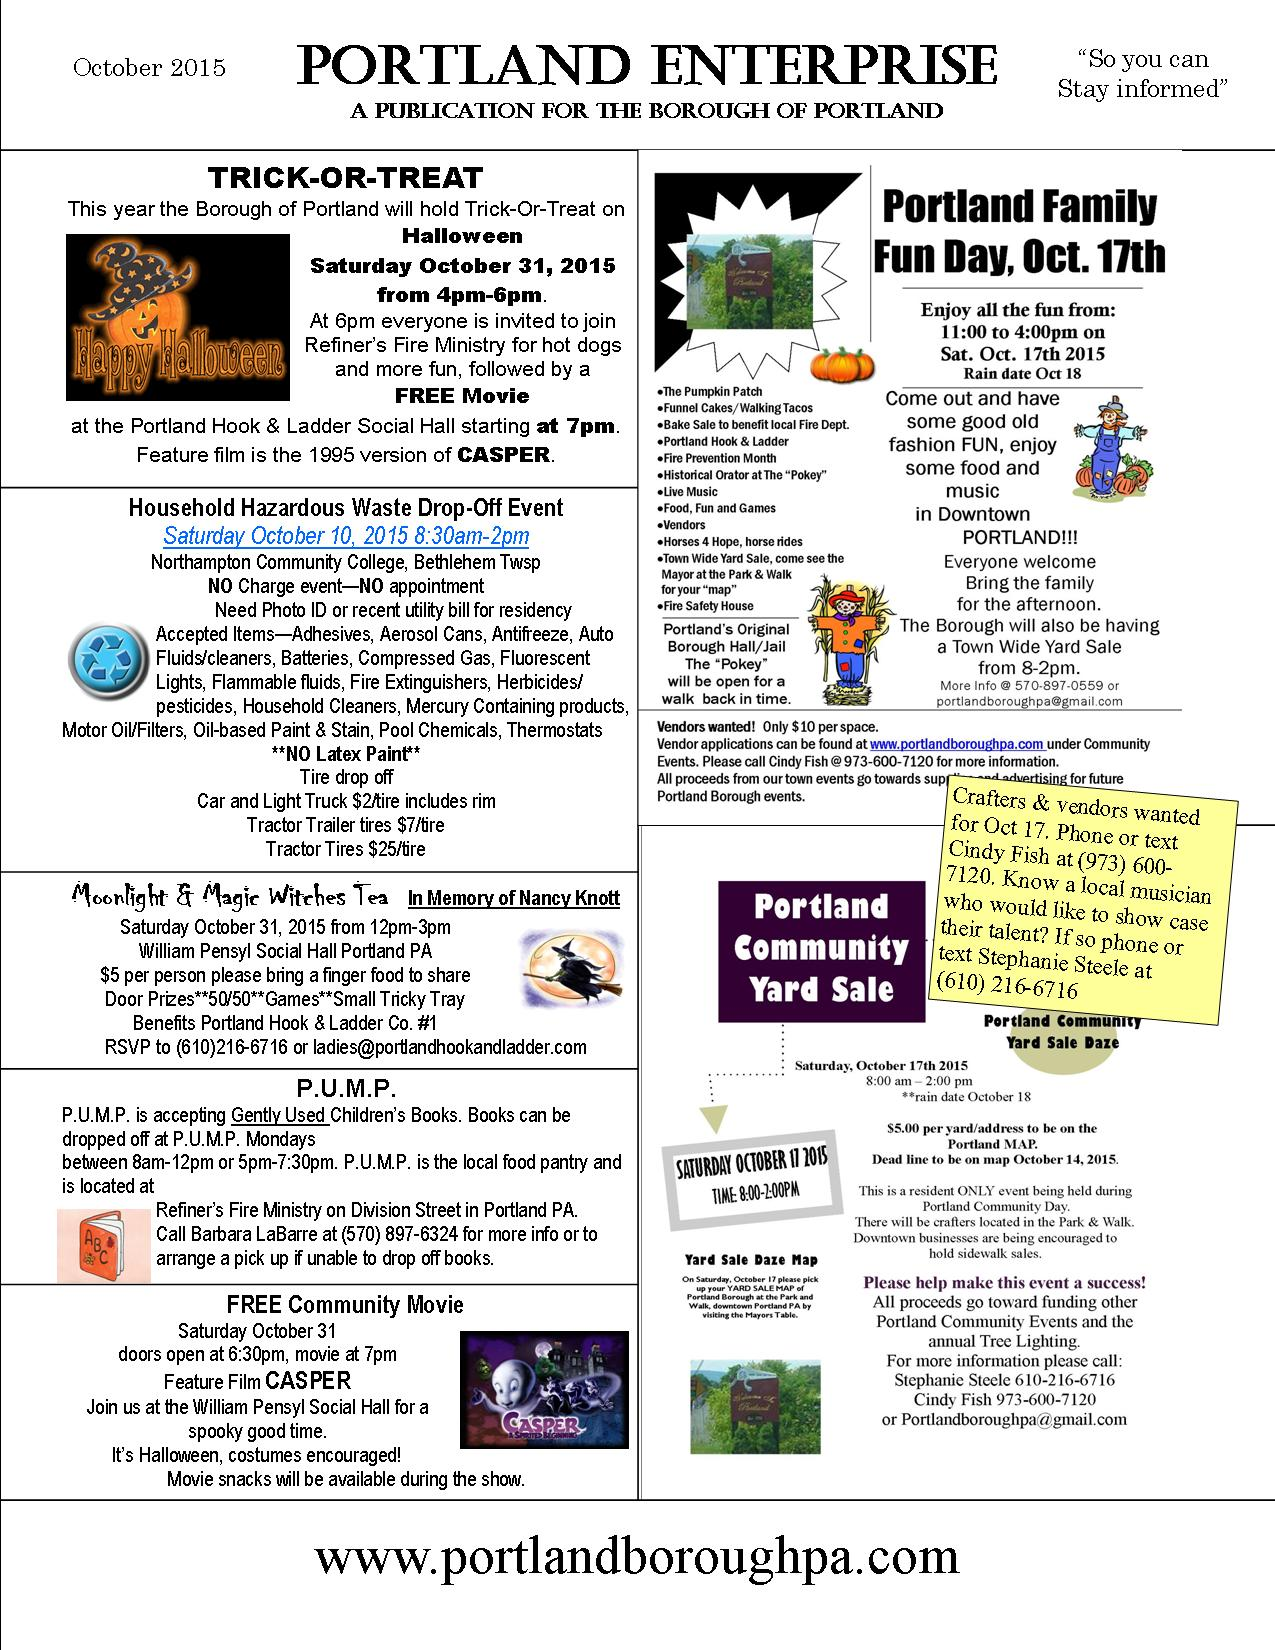 Archived Newsletters 2015 – Borough of Portland